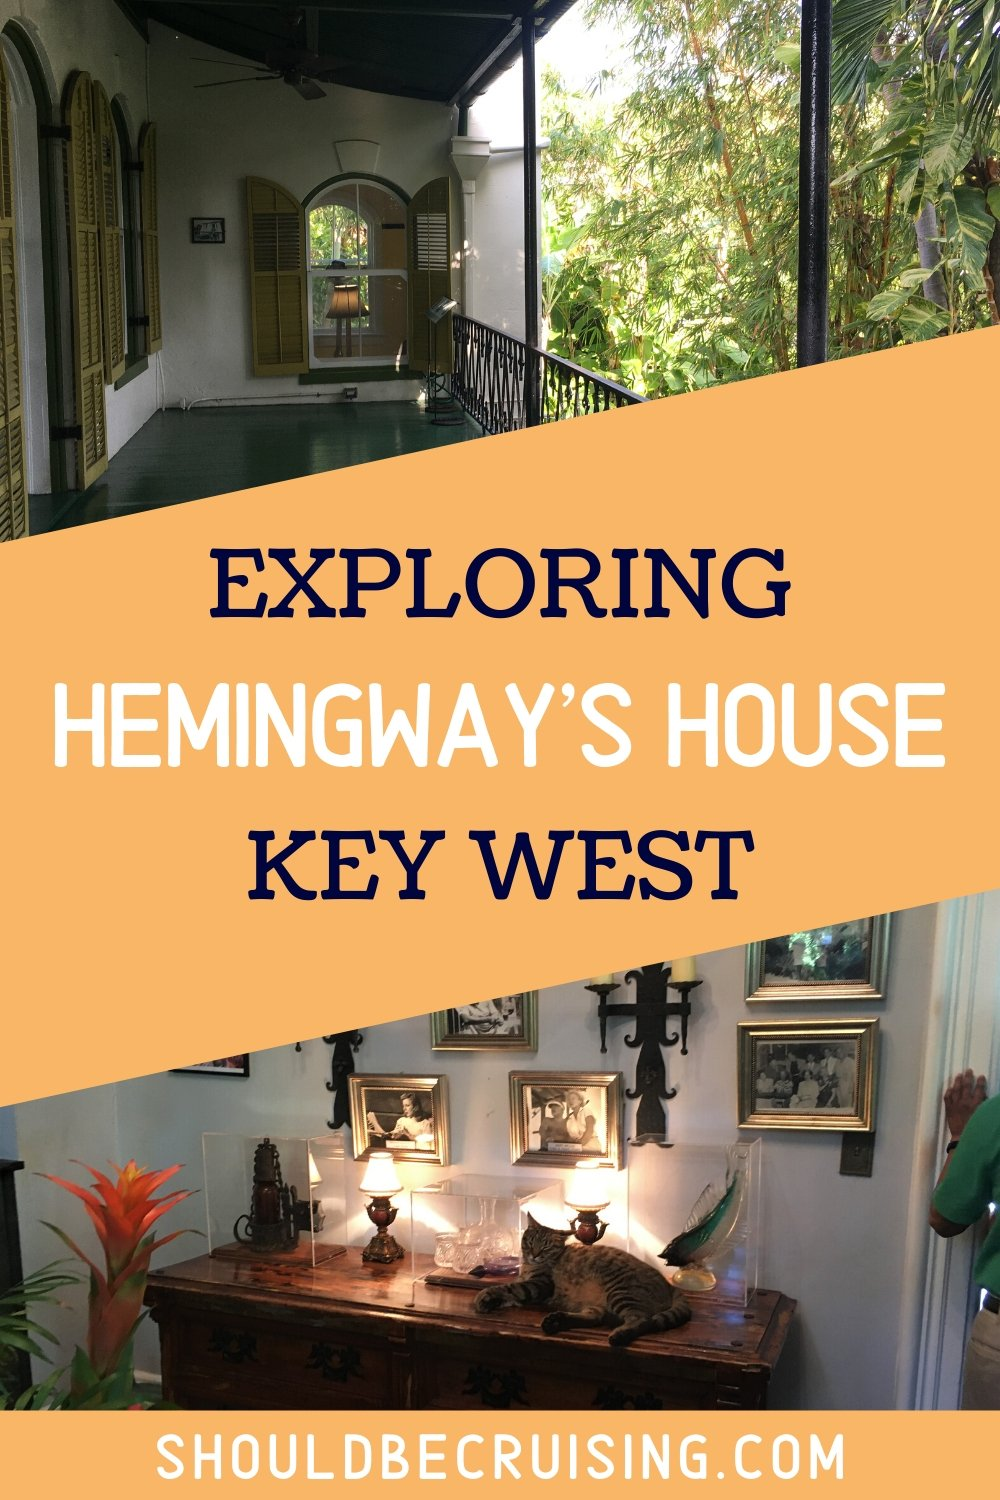 Visiting the Ernest Hemingway House in Key West